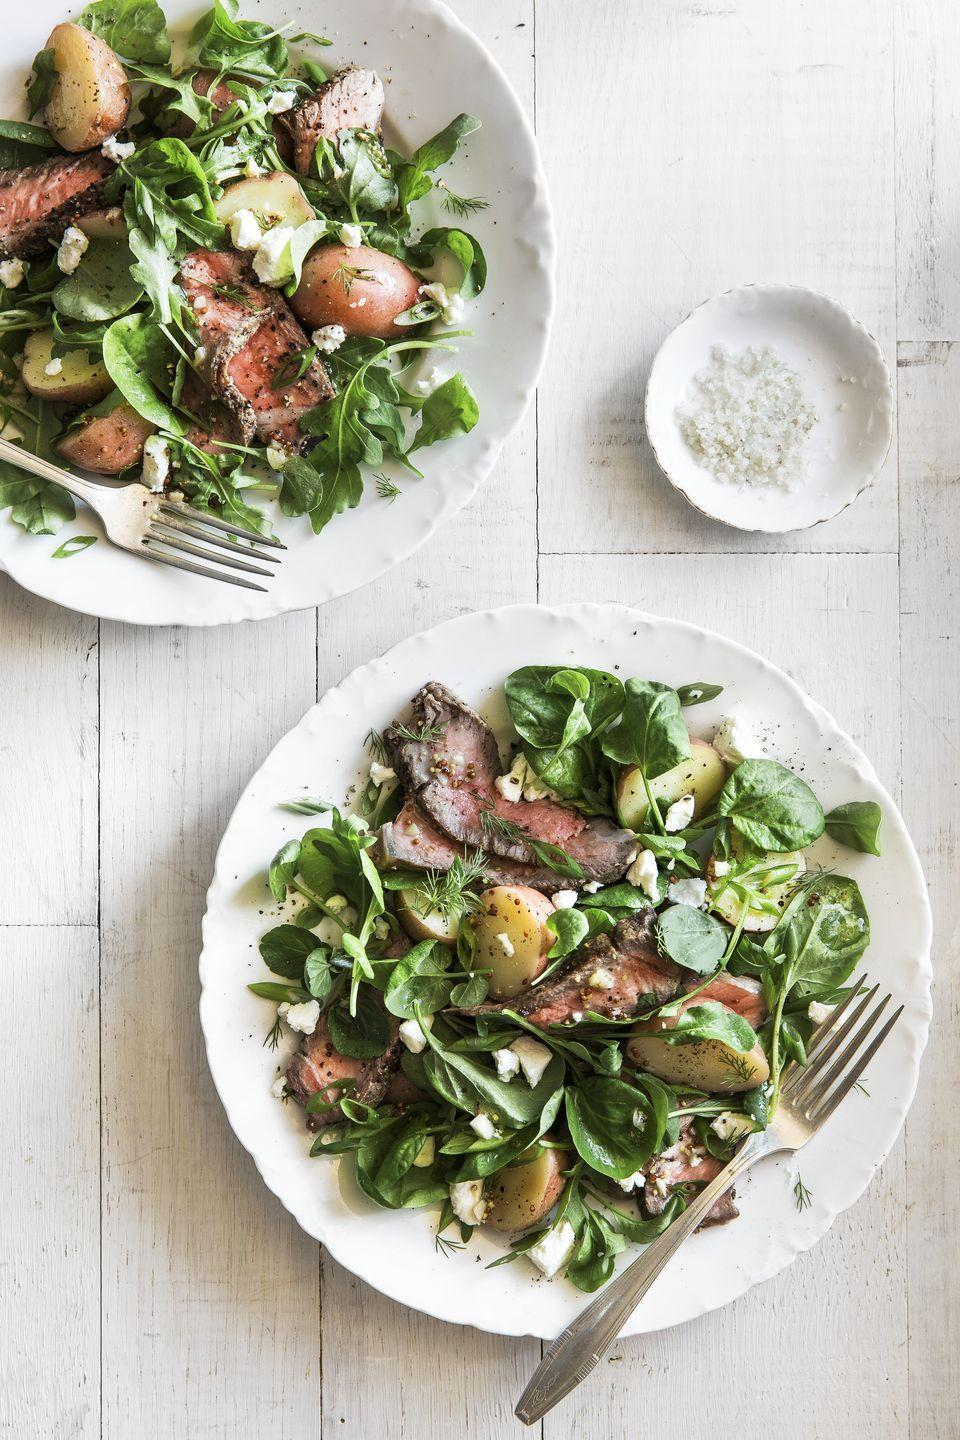 """<p>This steak-and-potato salad is a light and flavorful way to savor red meat.</p><p><strong><a href=""""https://www.countryliving.com/food-drinks/recipes/a35066/steak-and-potato-salad-1/"""" rel=""""nofollow noopener"""" target=""""_blank"""" data-ylk=""""slk:Get the recipe"""" class=""""link rapid-noclick-resp"""">Get the recipe</a>.</strong></p>"""